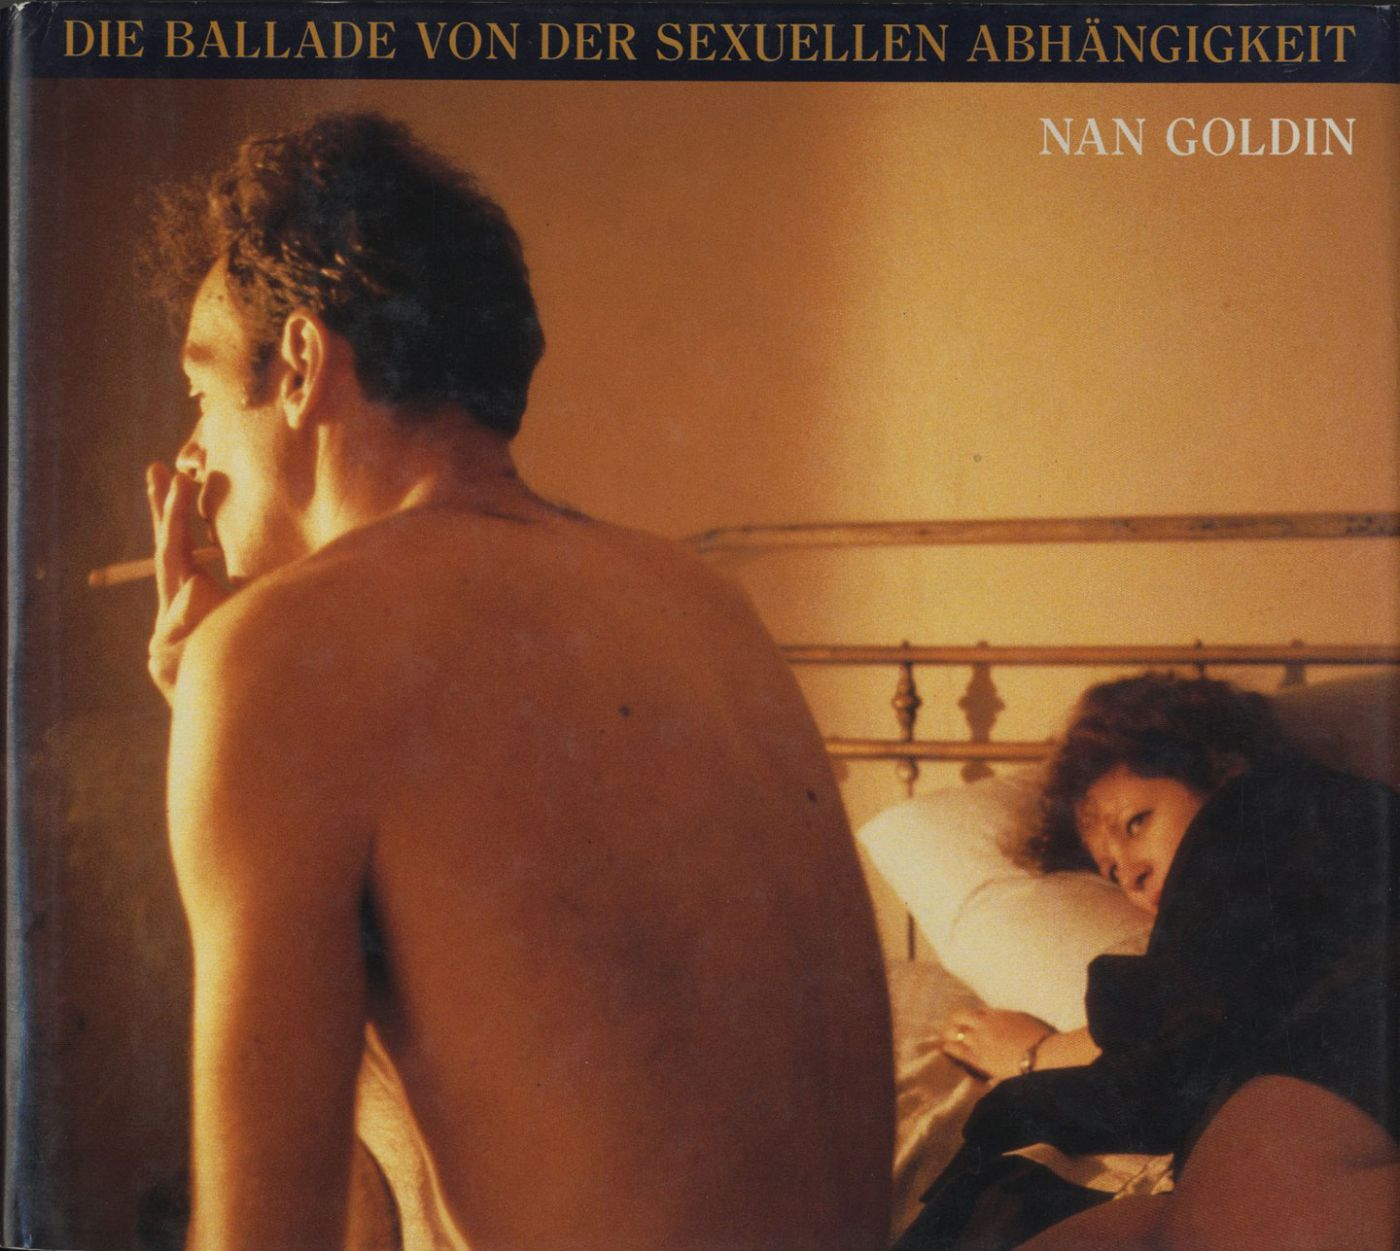 Nan Goldin: Die Ballade von der Sexuellen Abhängigkeit (First German Edition) / The Ballad of Sexual Dependency